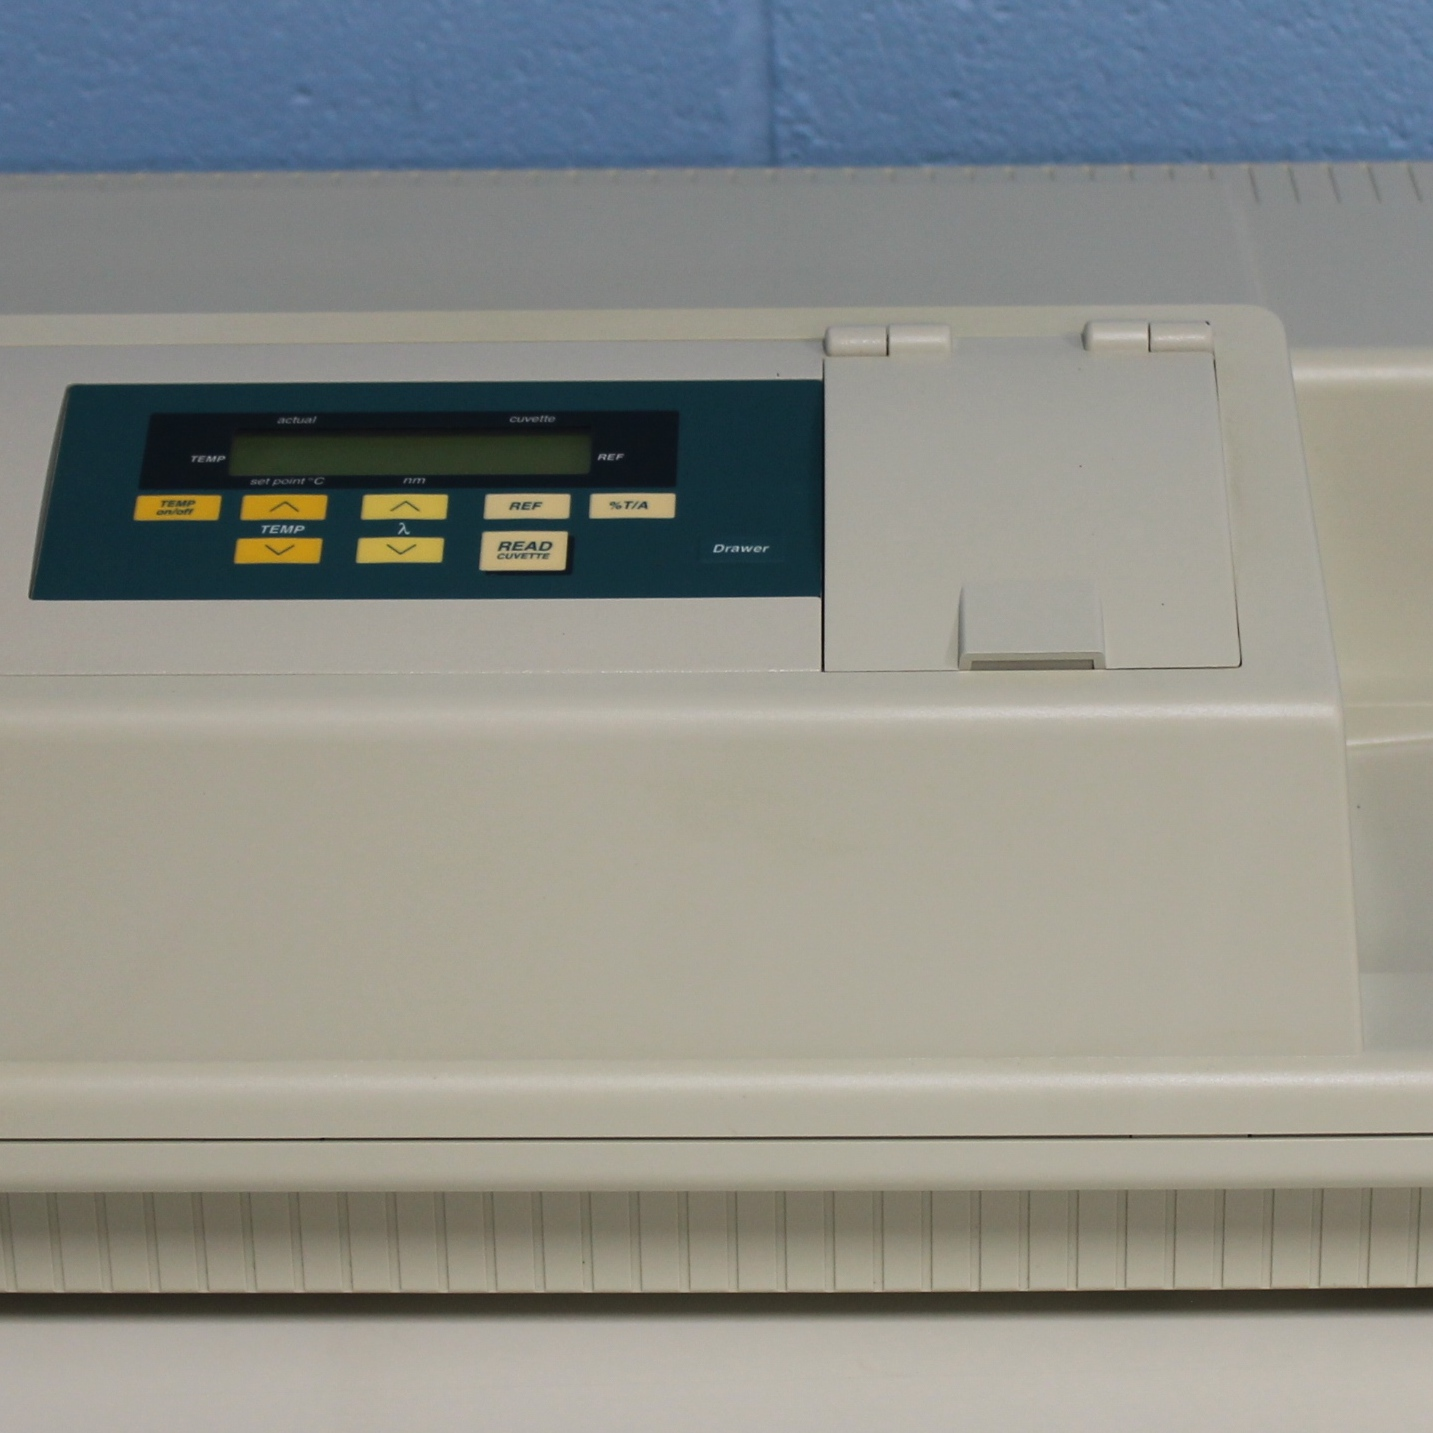 SpectraMax Plus 384 Absorbance Microplate Reader